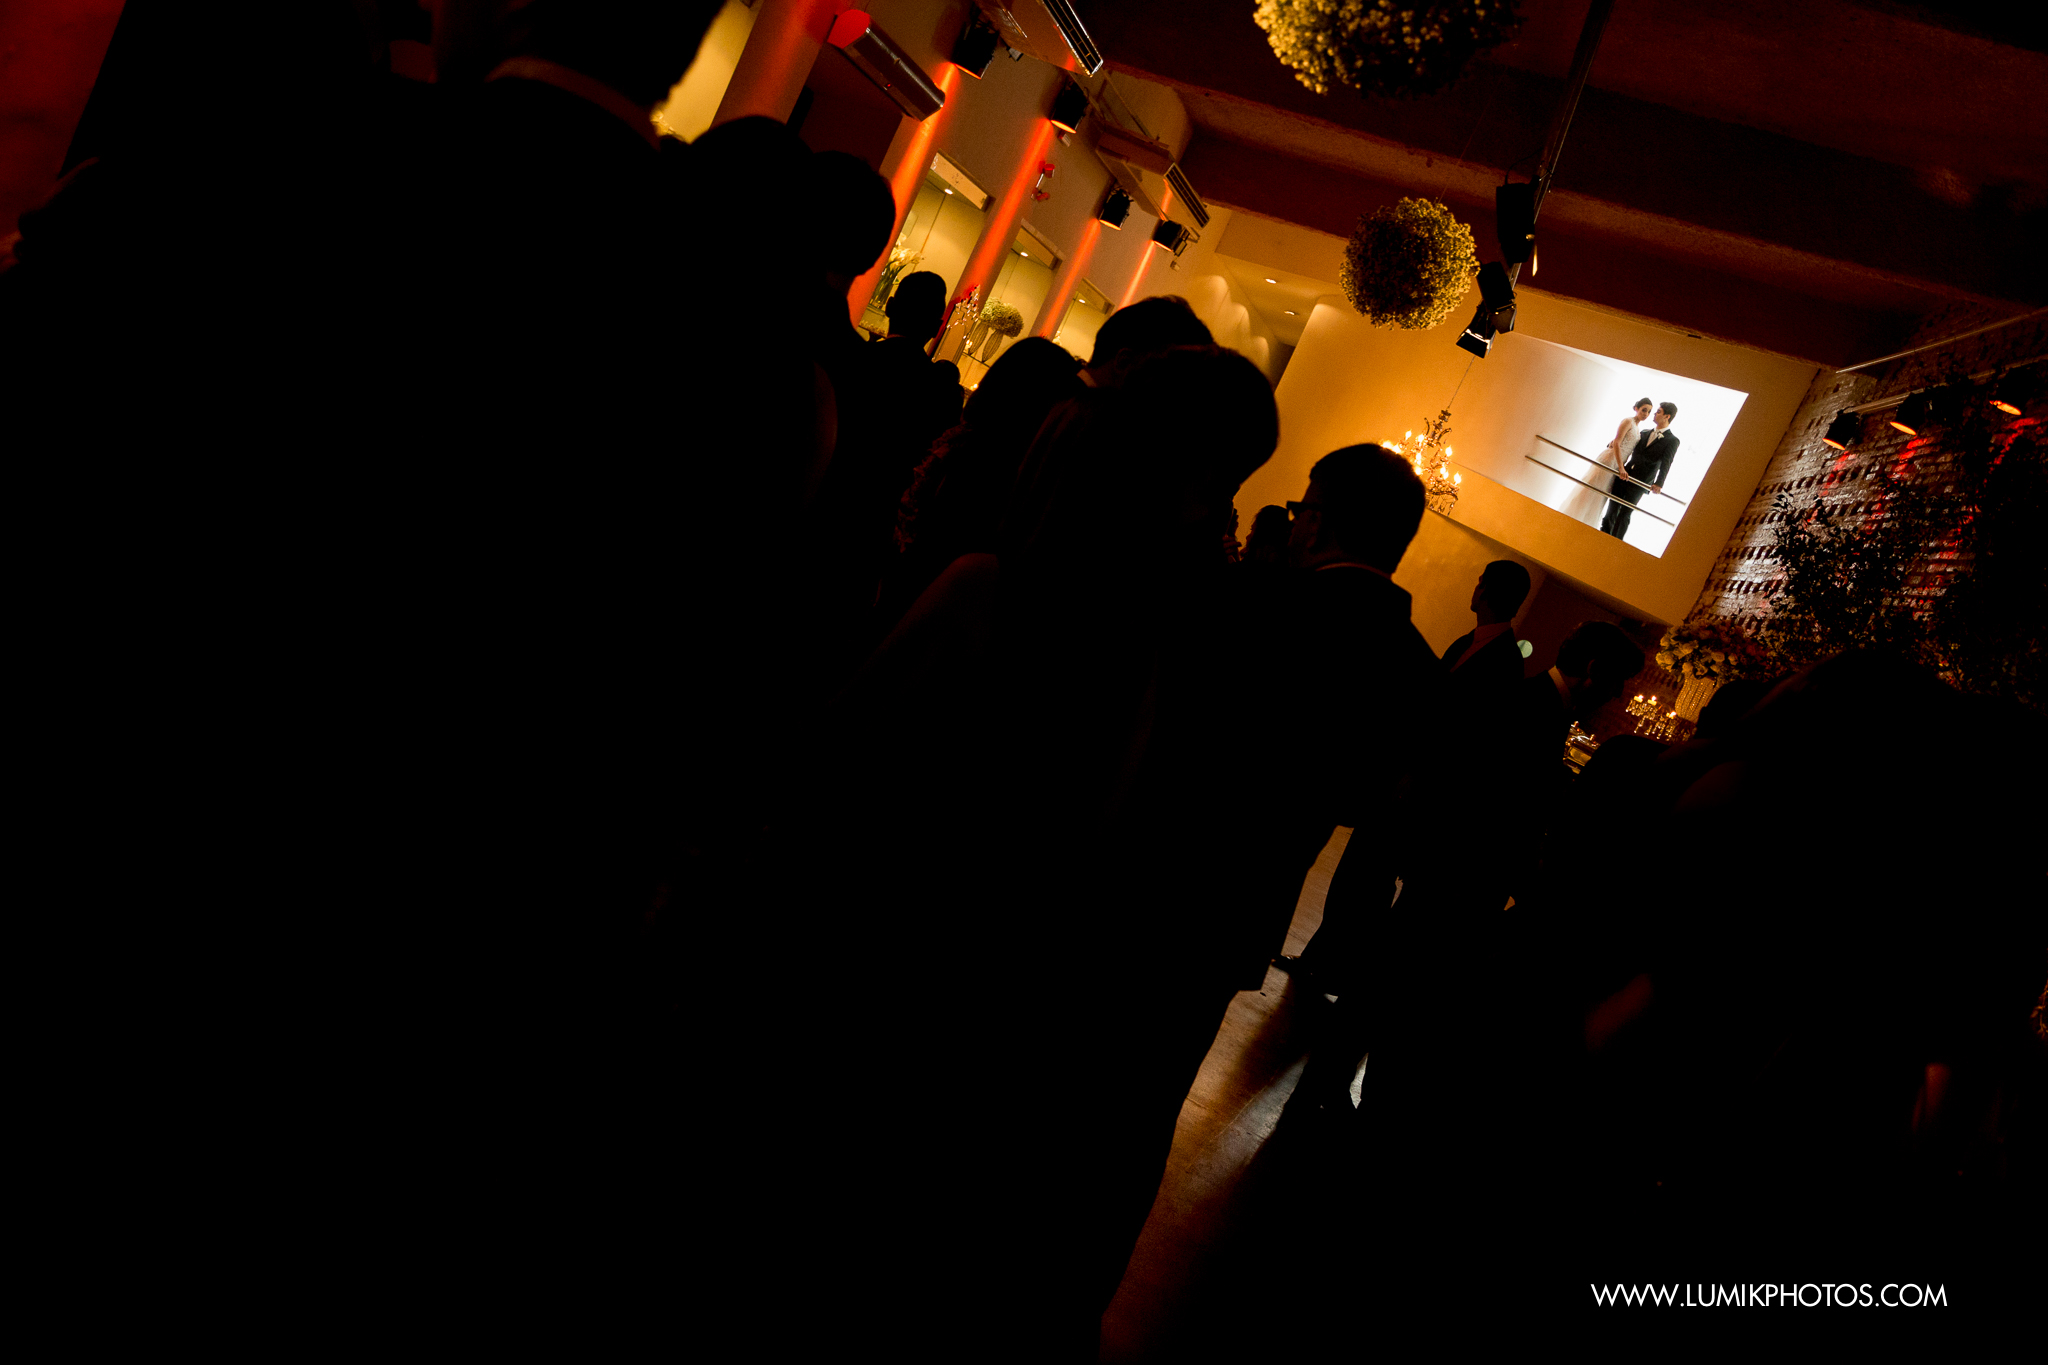 [destaque]Catarina+Marcio_LumikPhotos-65